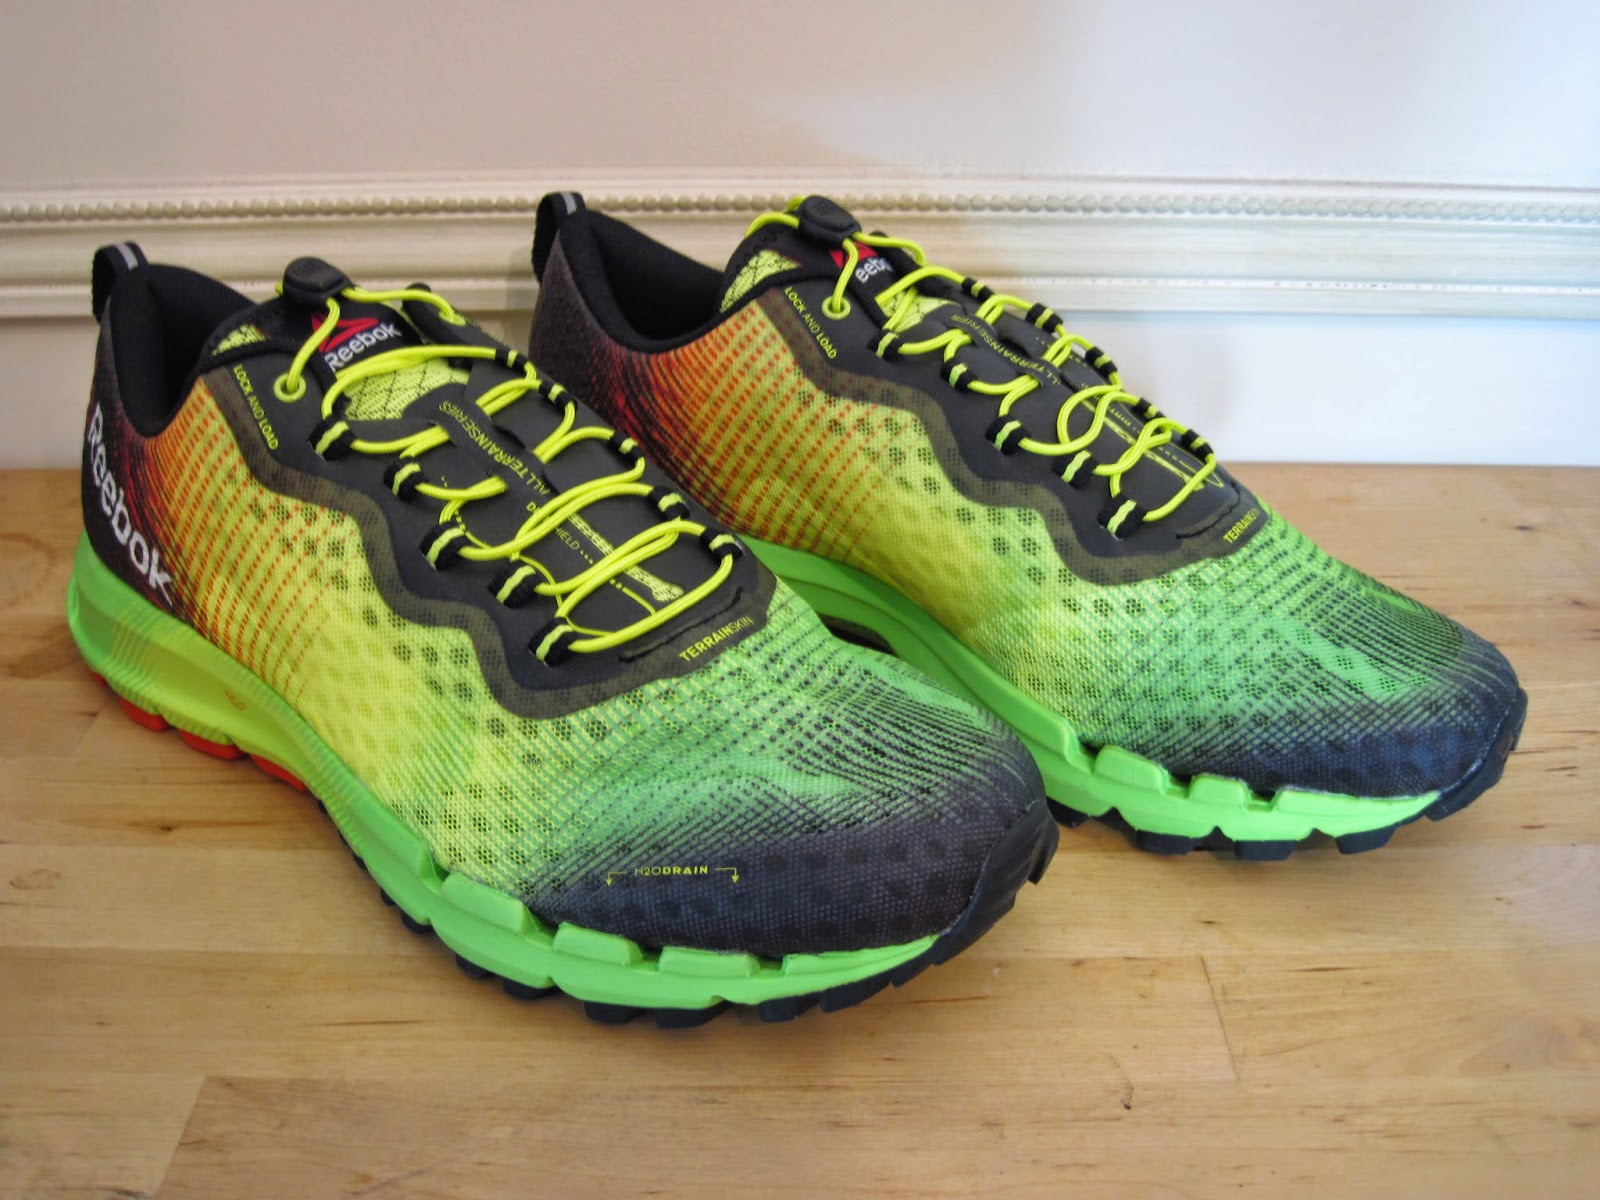 Mudman Terrain All ThunderocrShoes The ReportGear ReviewReebok f7gyvYb6